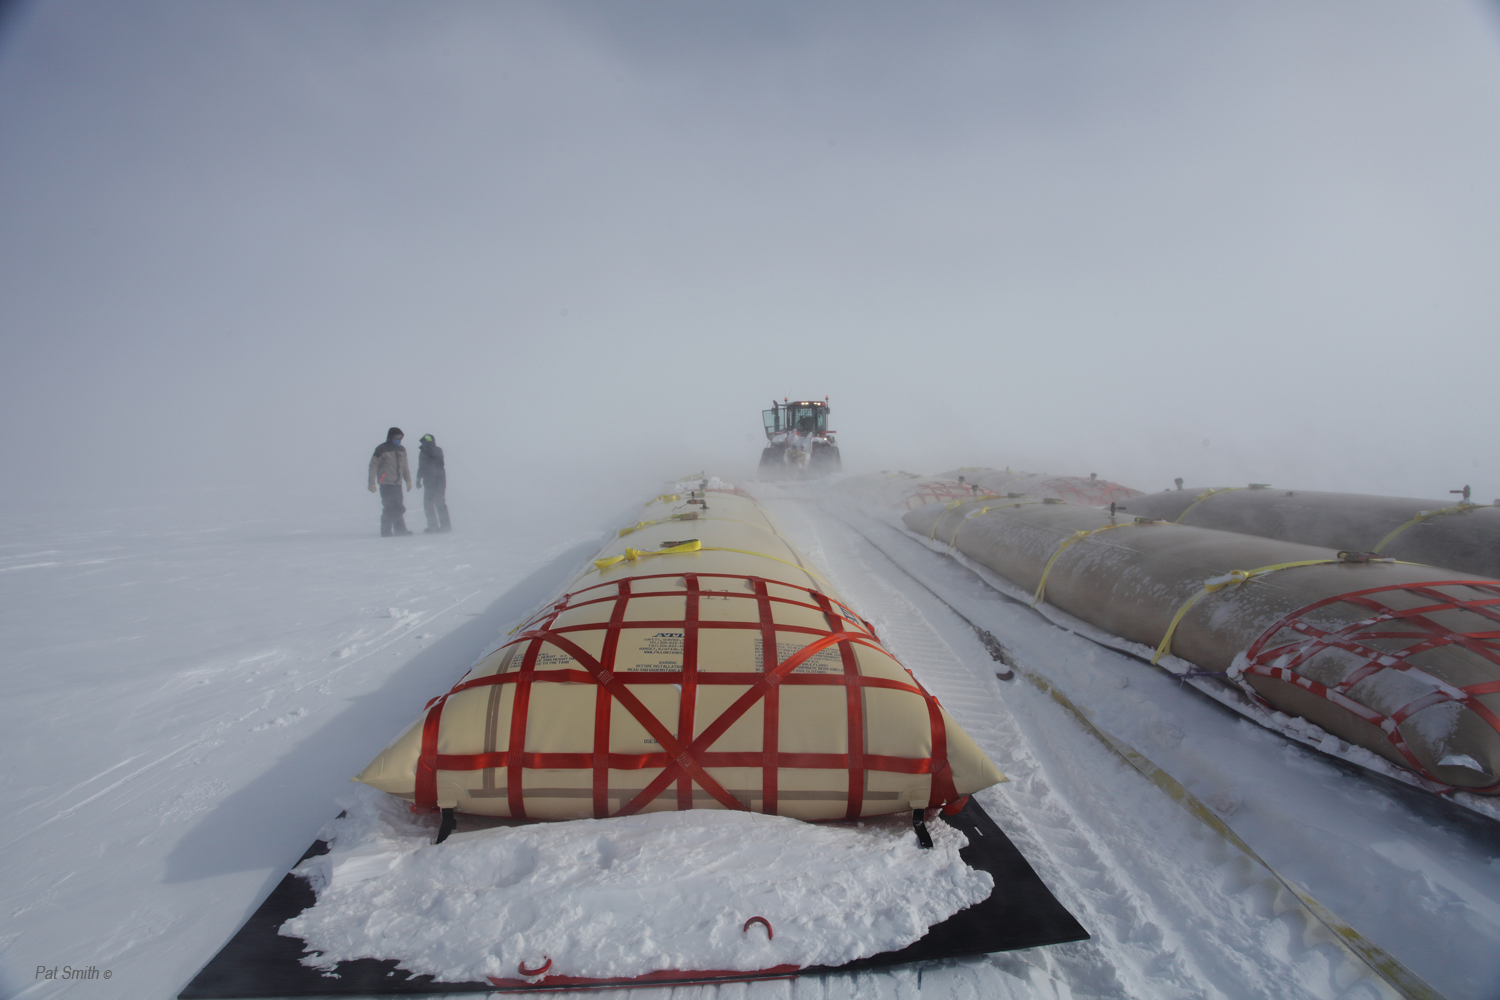 Team members transfer the fuel bladder sled in this May 1, 2011 shot of the Greenland Inland Traverse. Photo: Pat Smith